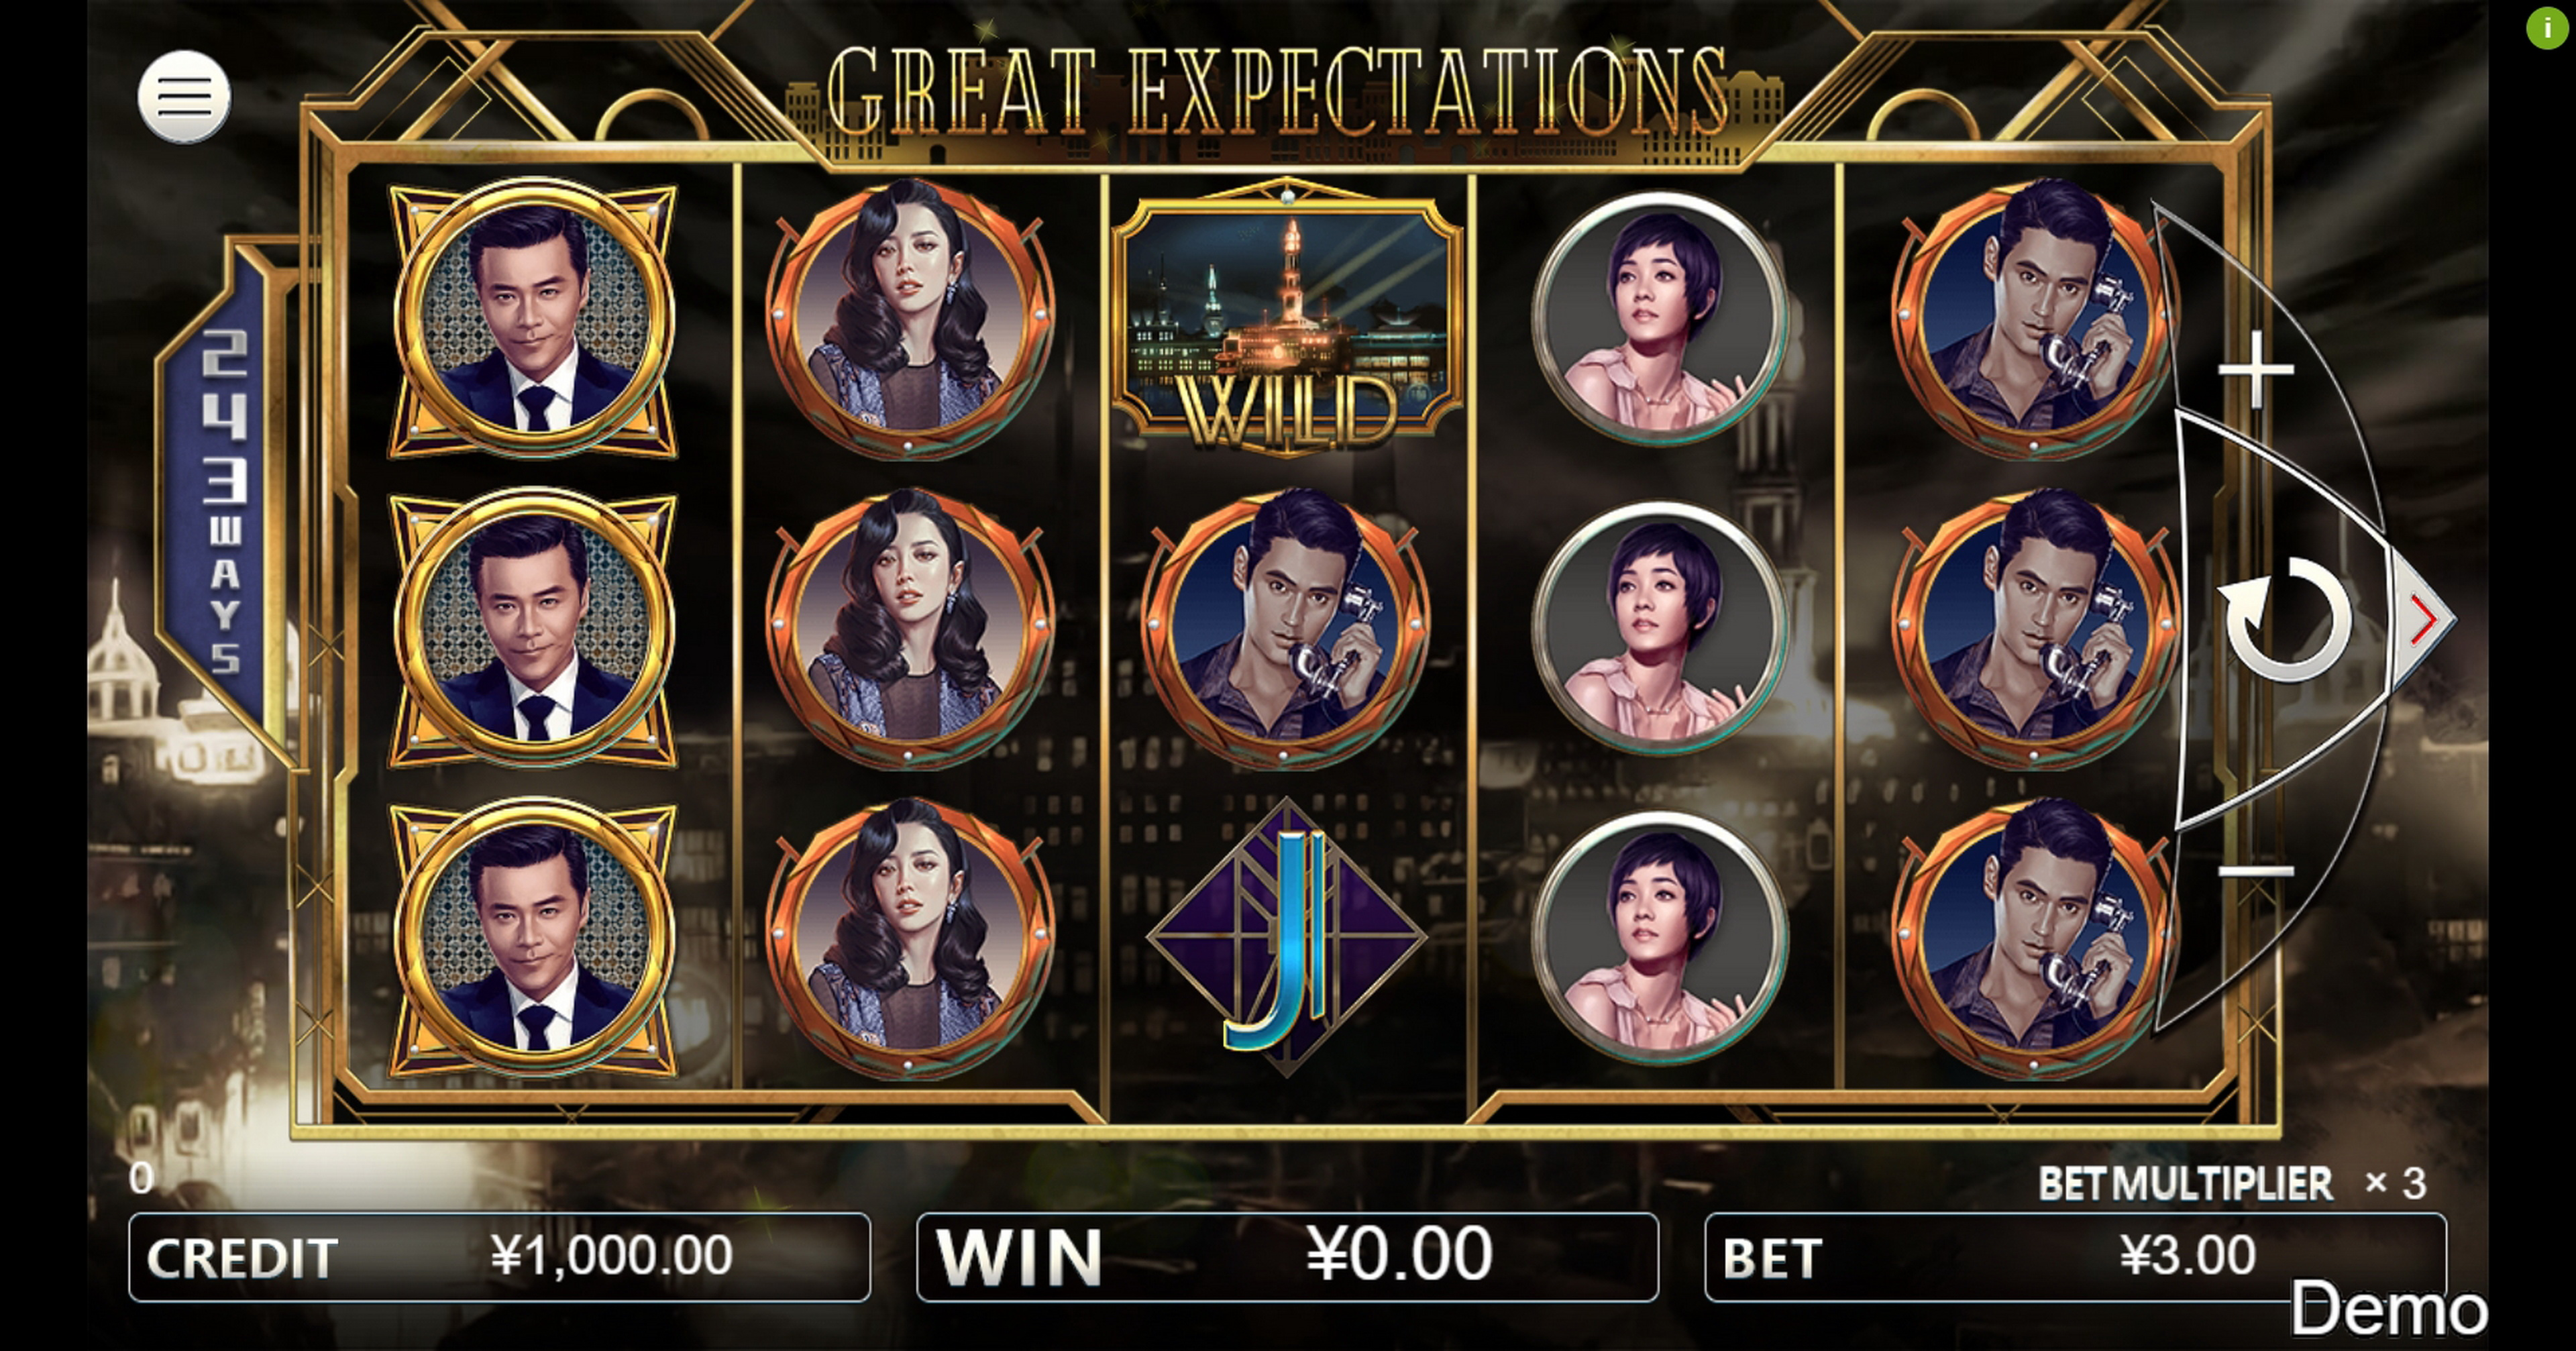 Reels in Great Expectations Slot Game by Iconic Gaming